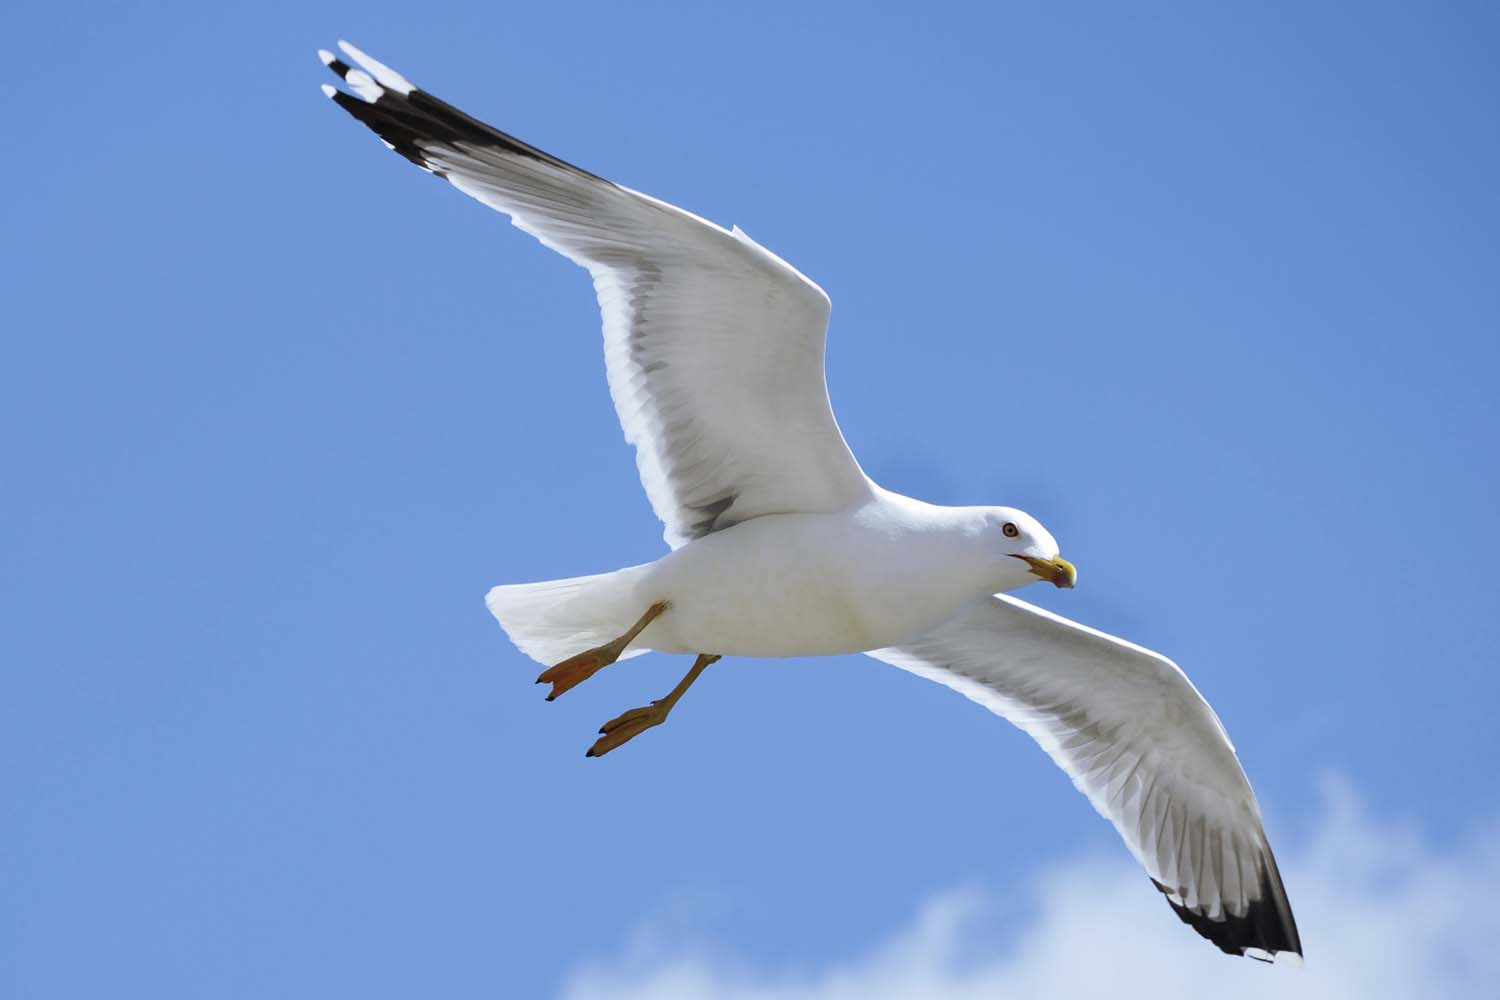 Seagull symbolism whispers channels prophecies visions altavistaventures Image collections